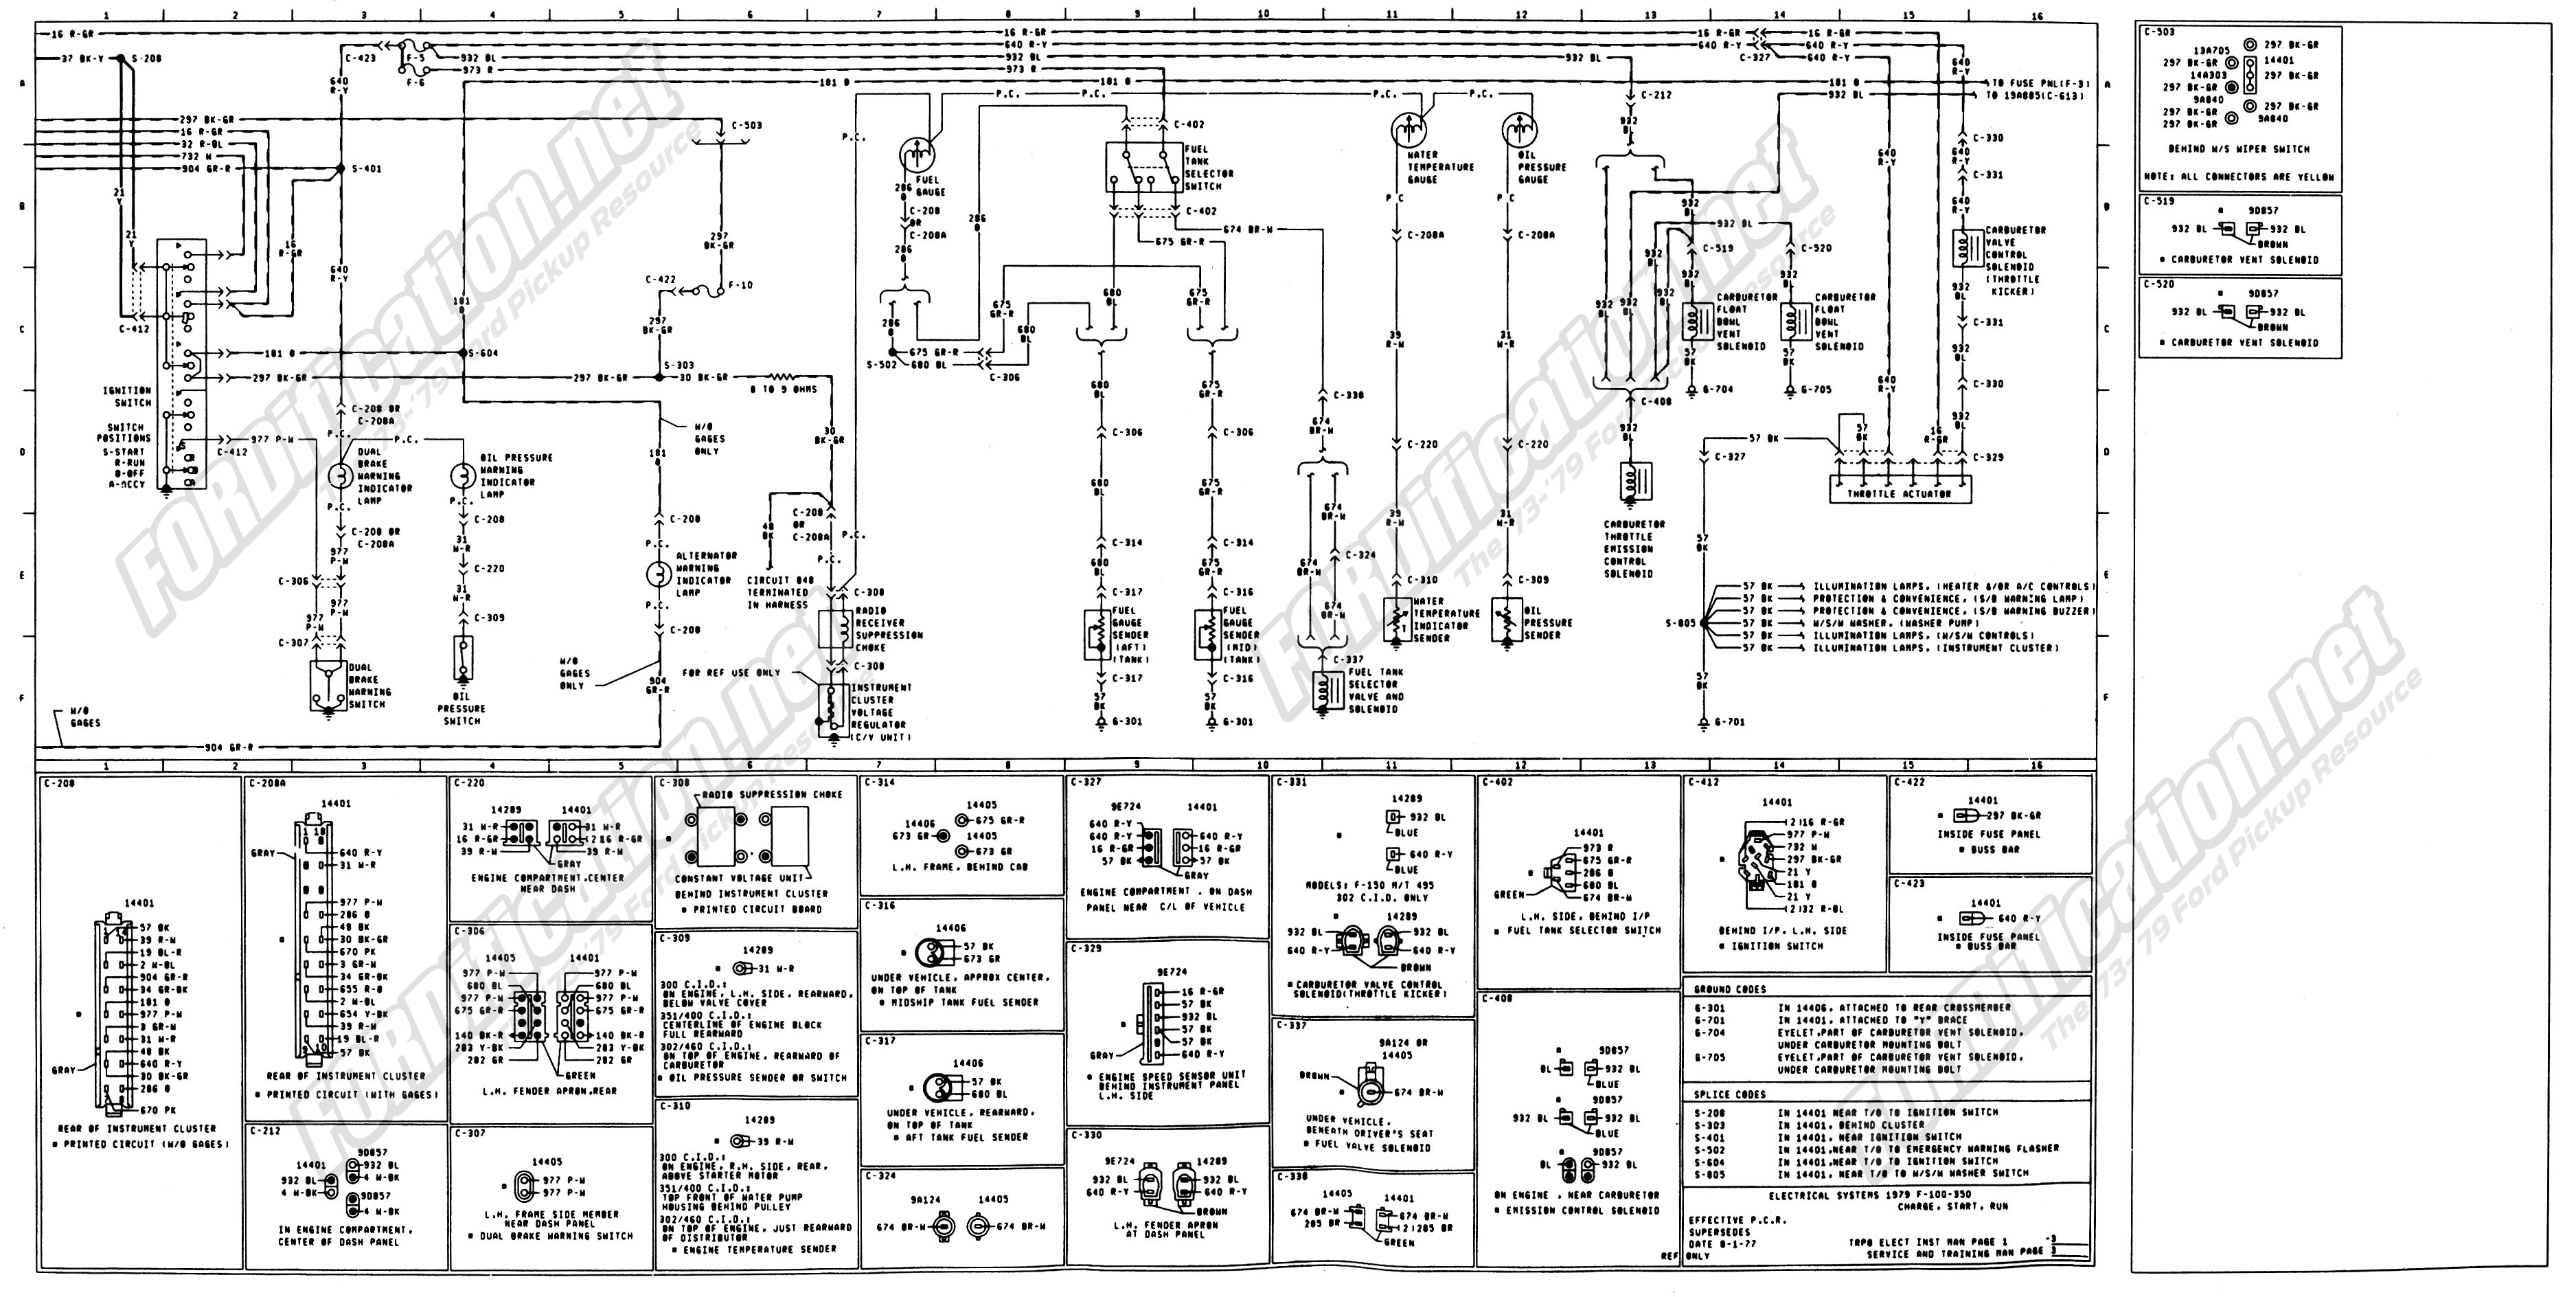 Wiring Diagram For A 73 78 Ford F100 Libraries Icp Heat Pump Defrost Board Model Phm342kooa Todays1973 1979 Truck Diagrams U0026 Schematics